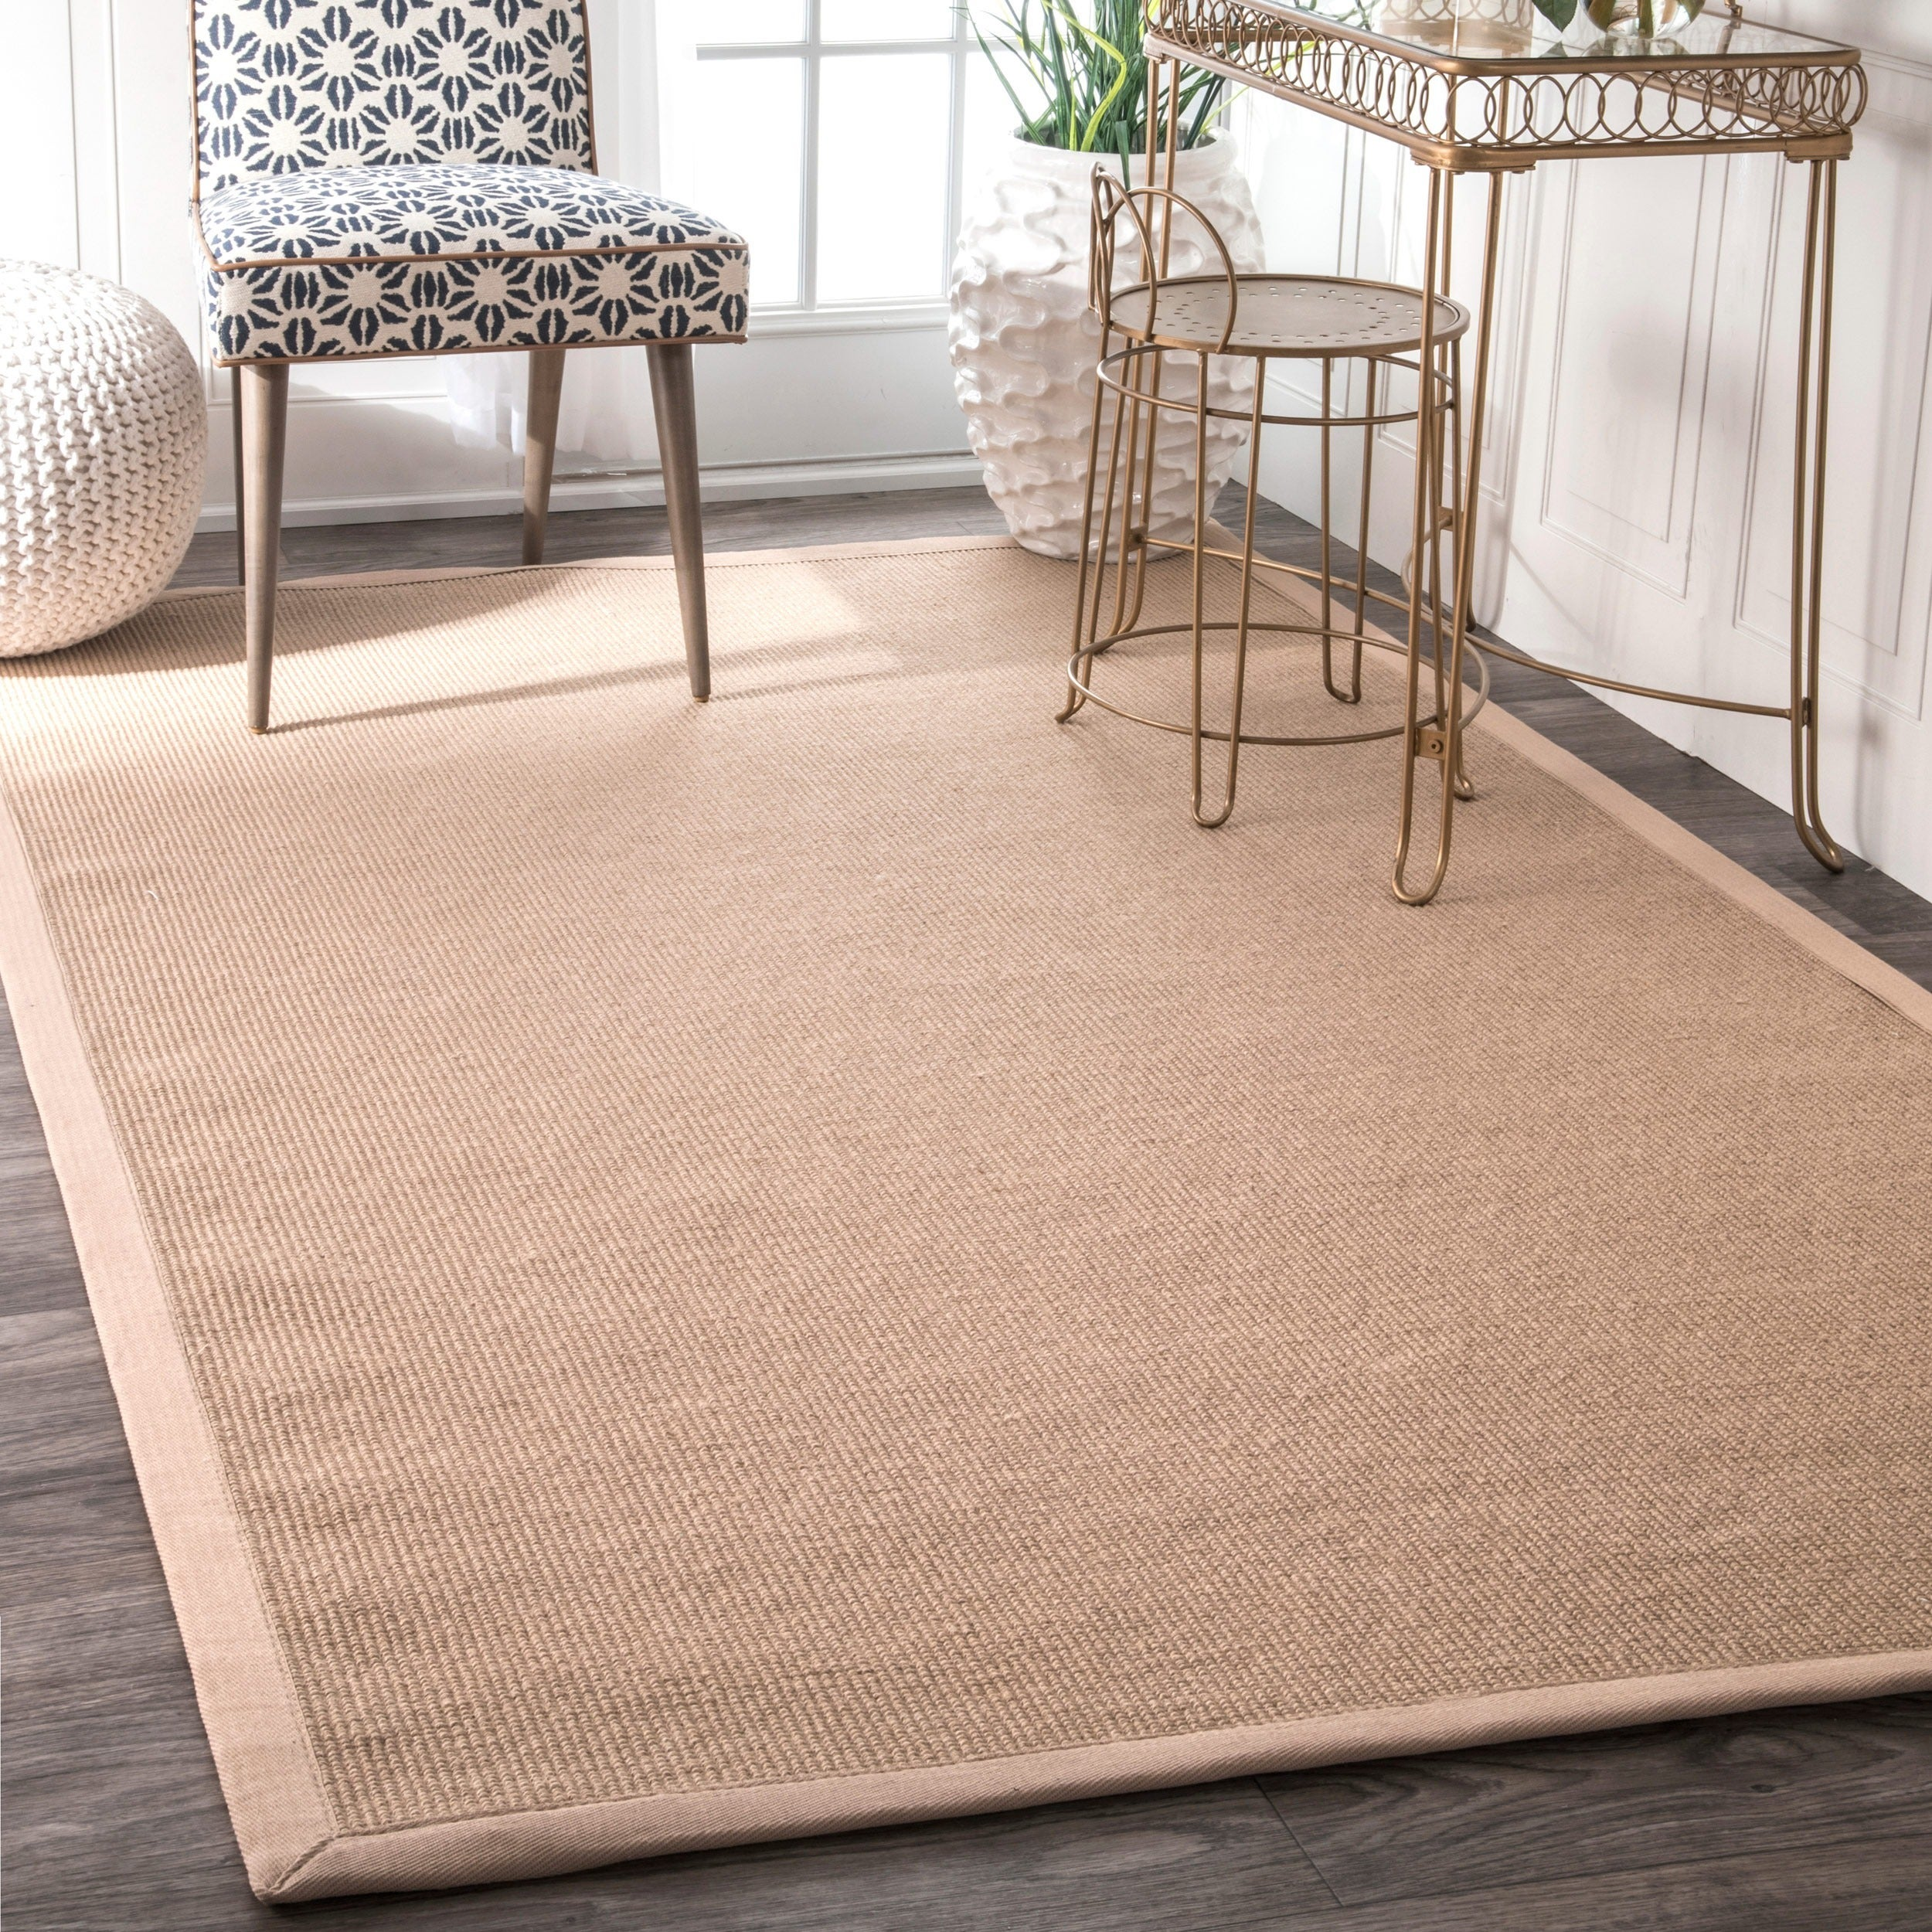 nuLOOM Handmade Alexa Eco Natural Fiber Cotton Border Jute Rug (5' x 8') at Sears.com